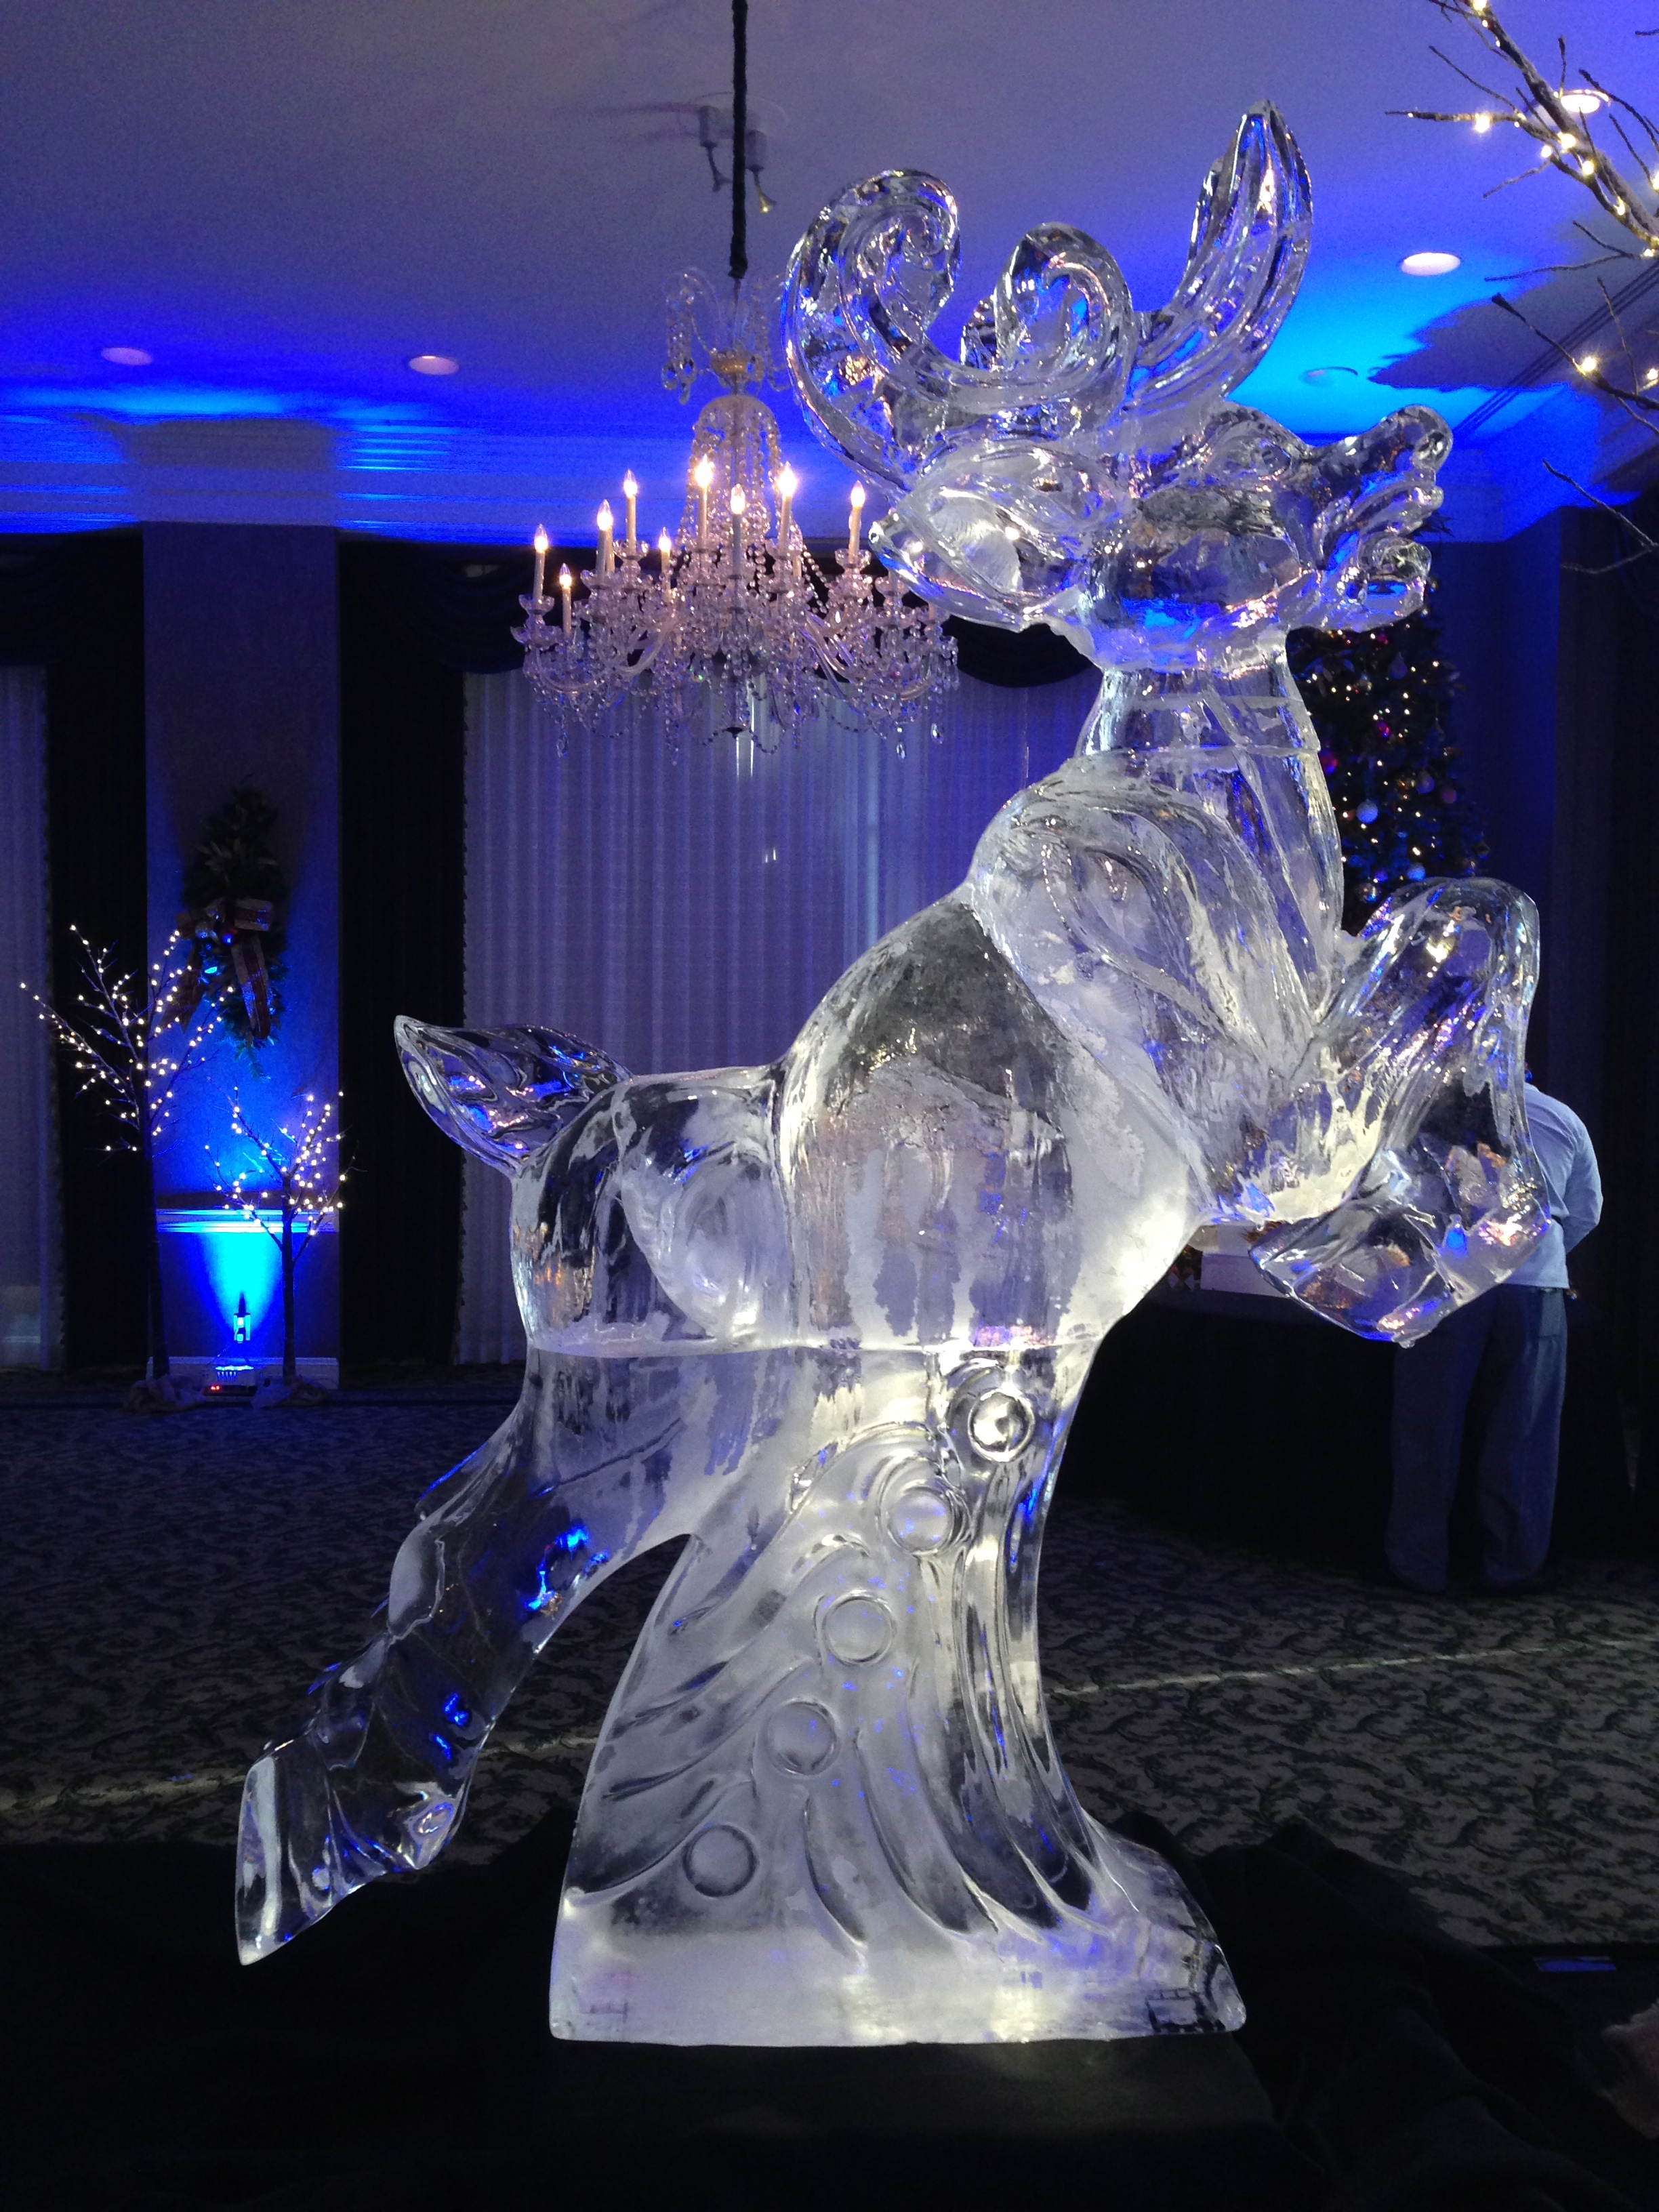 Jumping reindeer ice sculpture